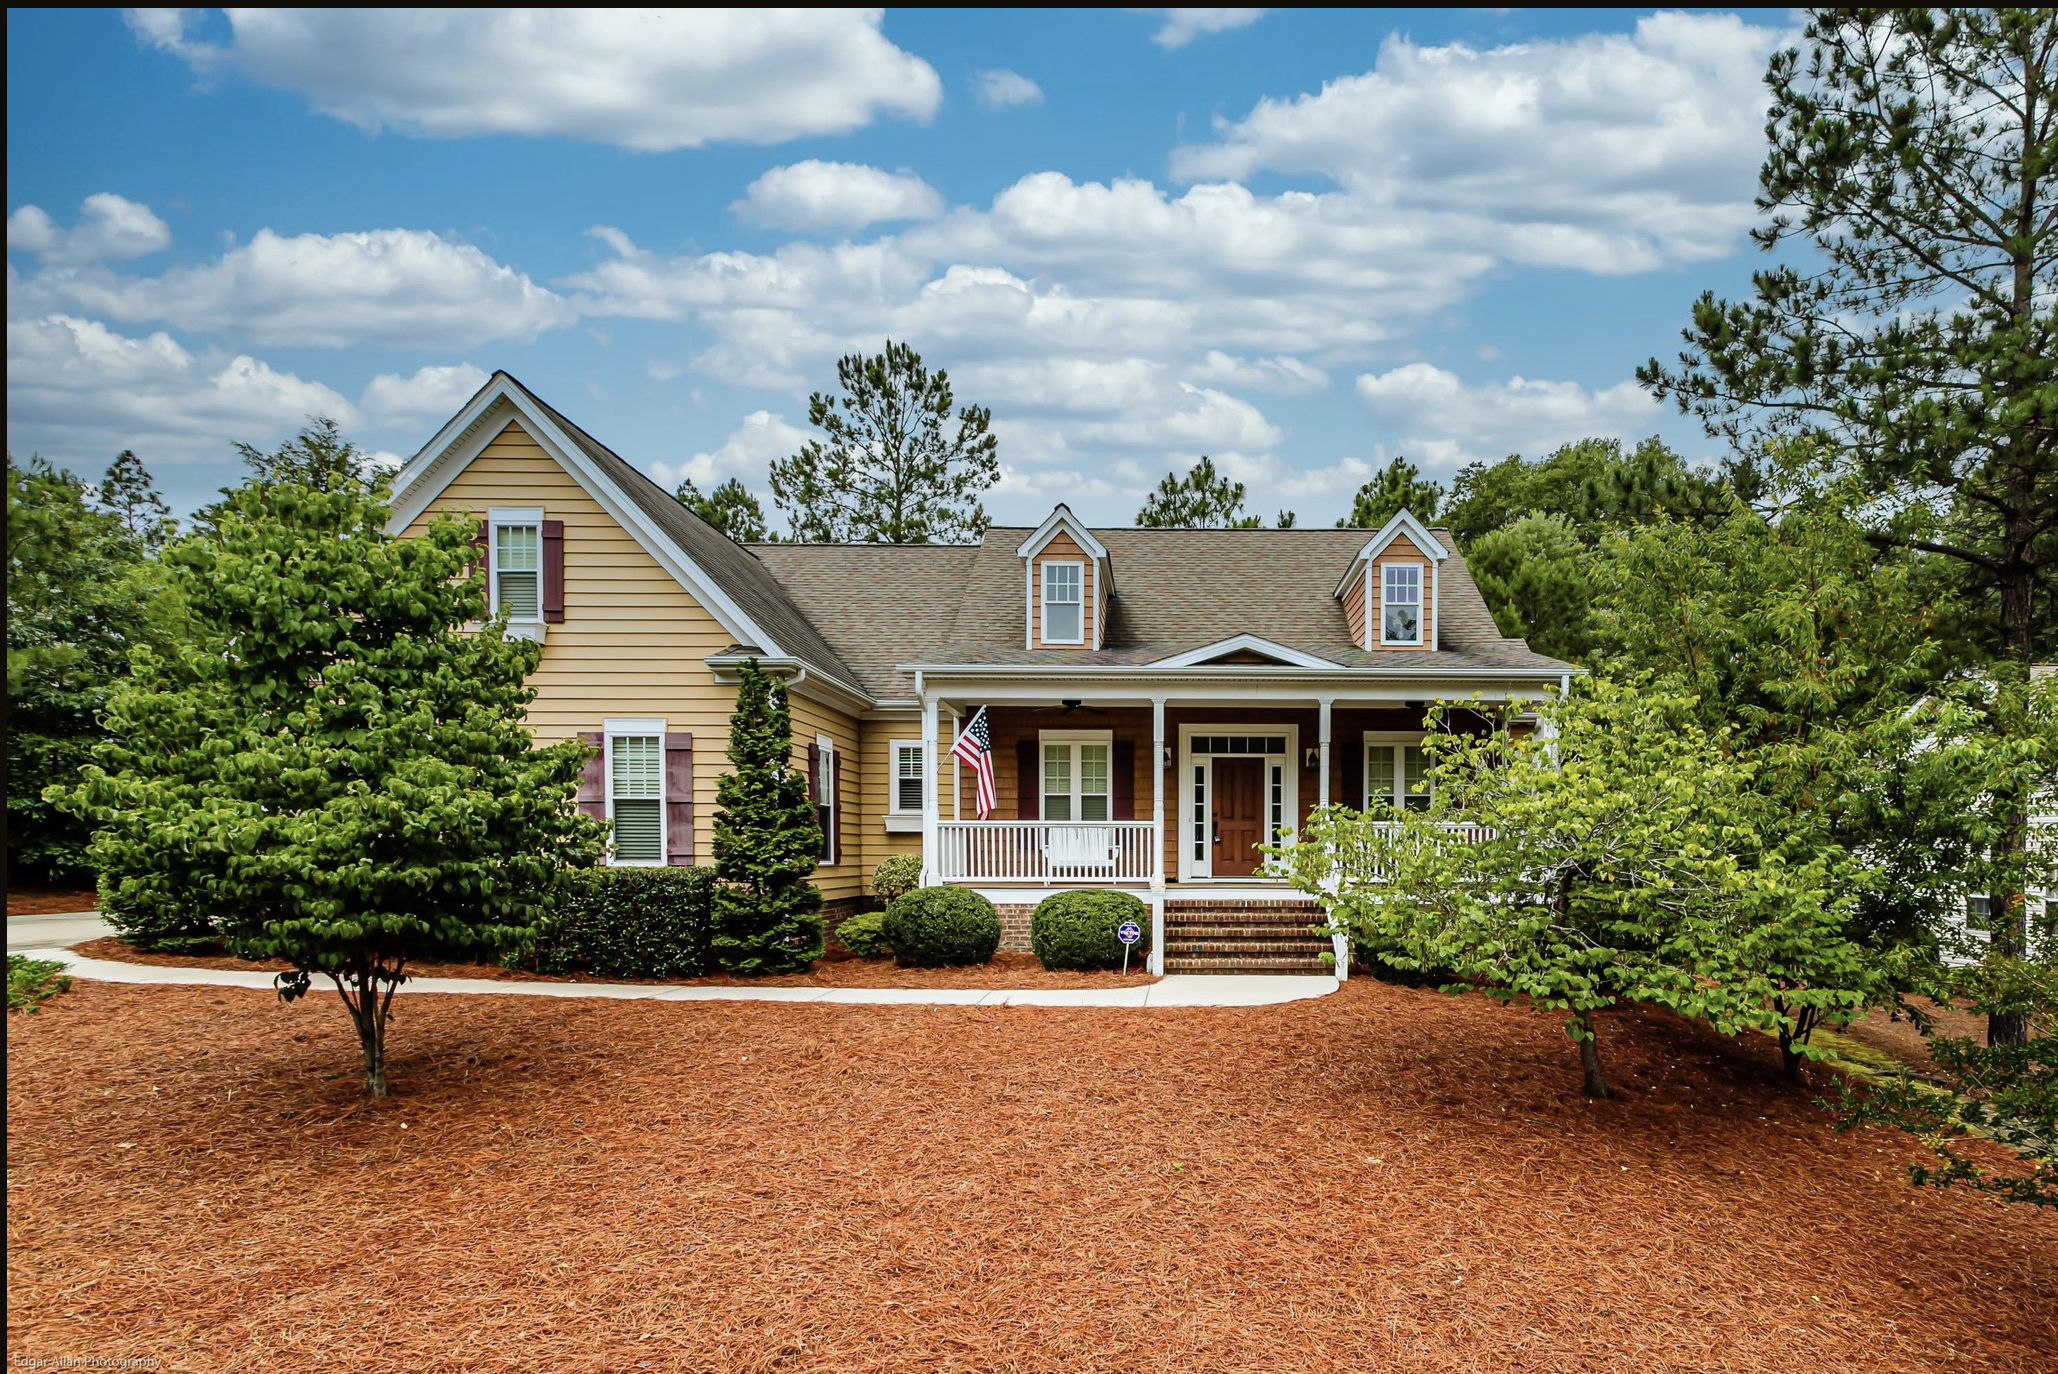 Love Pines Realty Announces Sale of 9 Shamrock Way